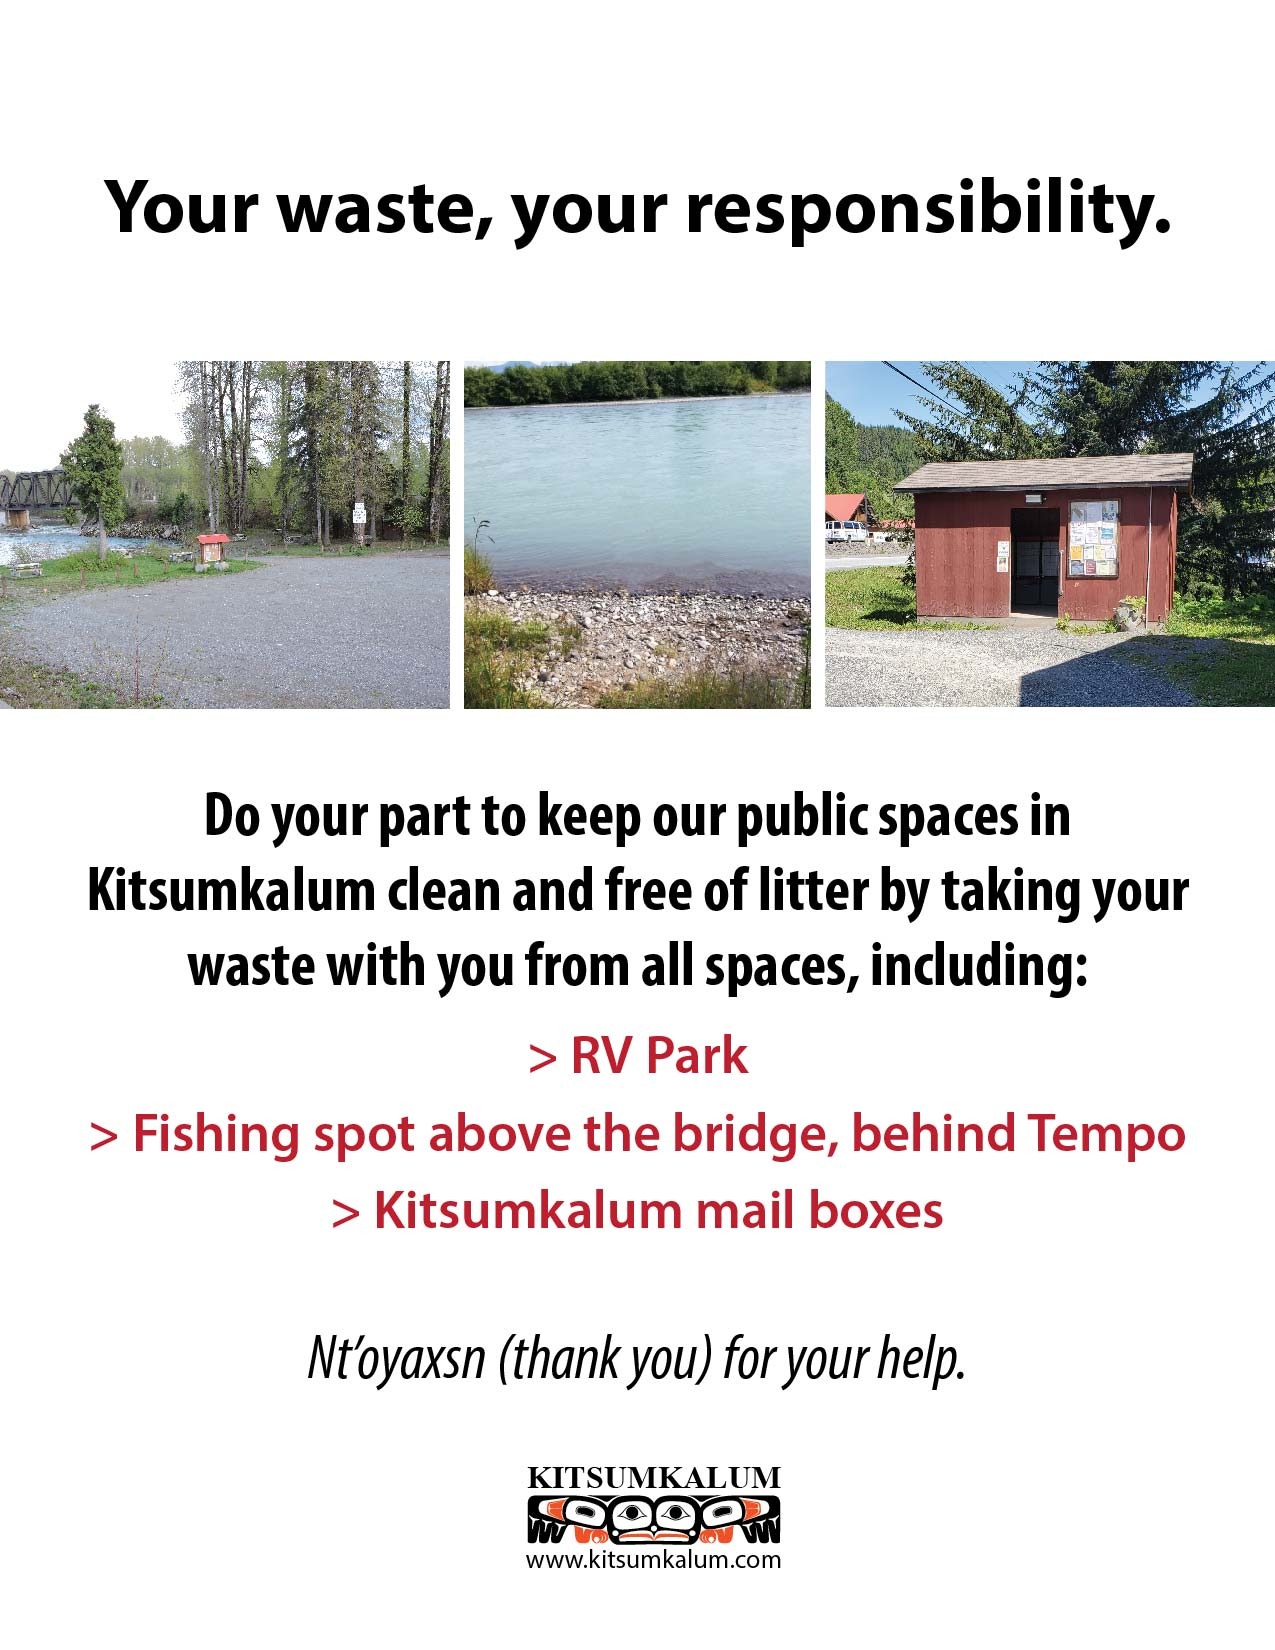 Your Waste Your Responsibility